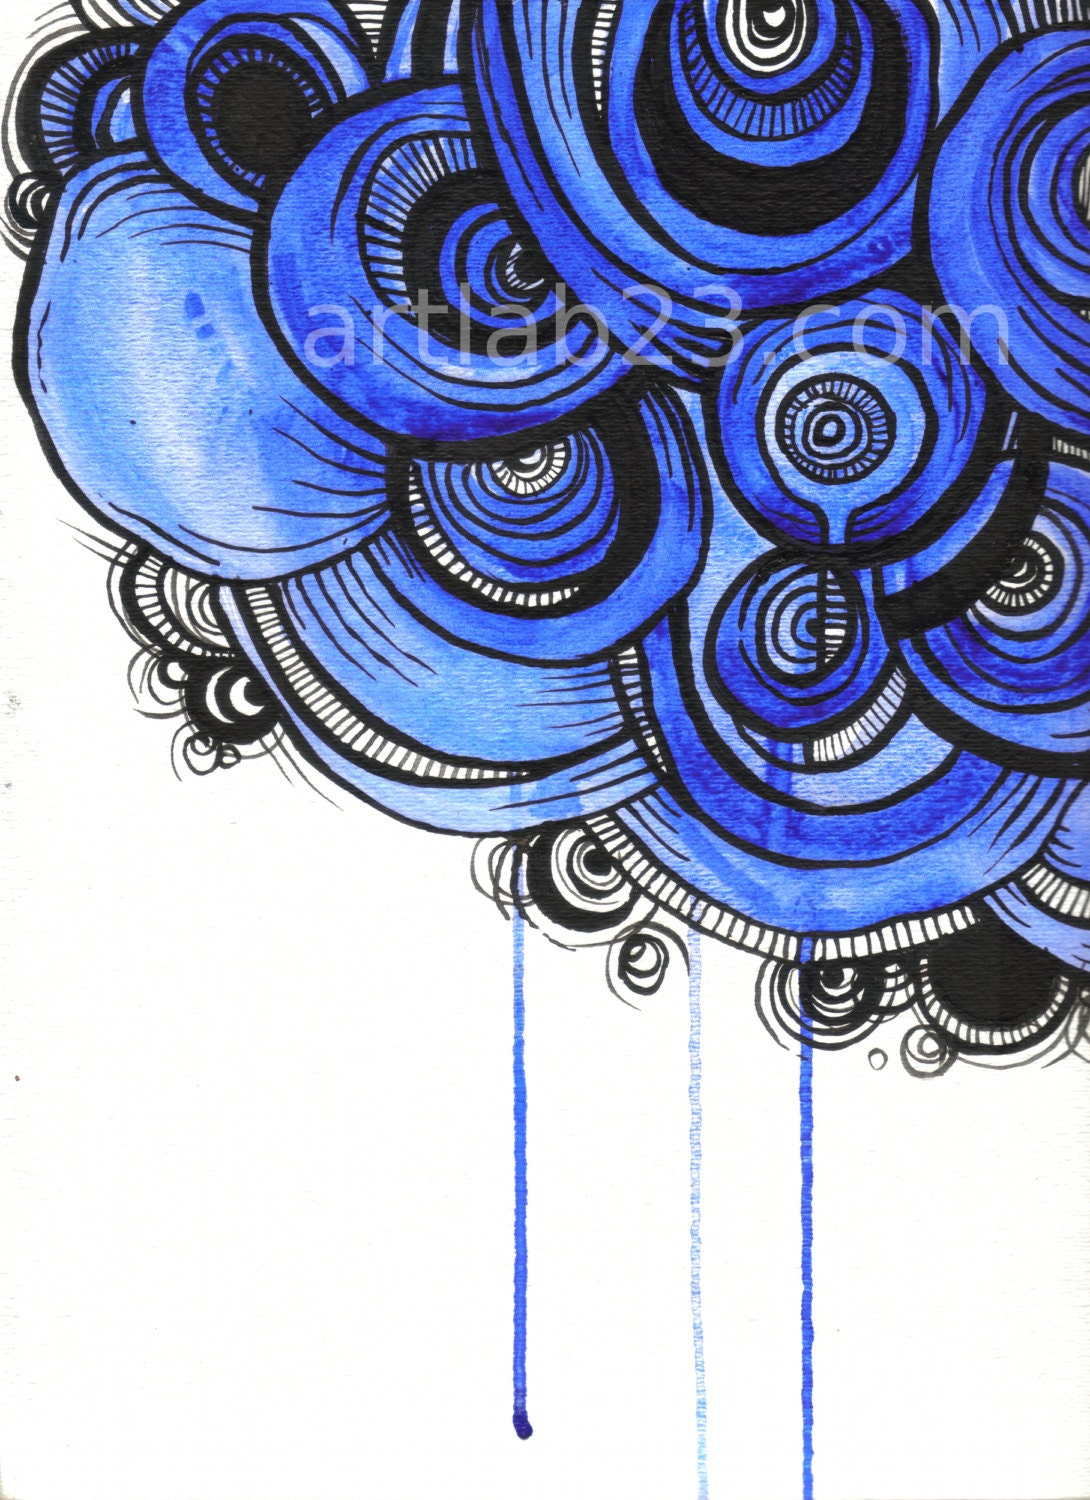 Blue Drips Abstract Painting - Original Gouache & Ink on Watercolor Paper - royal blue organic modern art - artLAB23